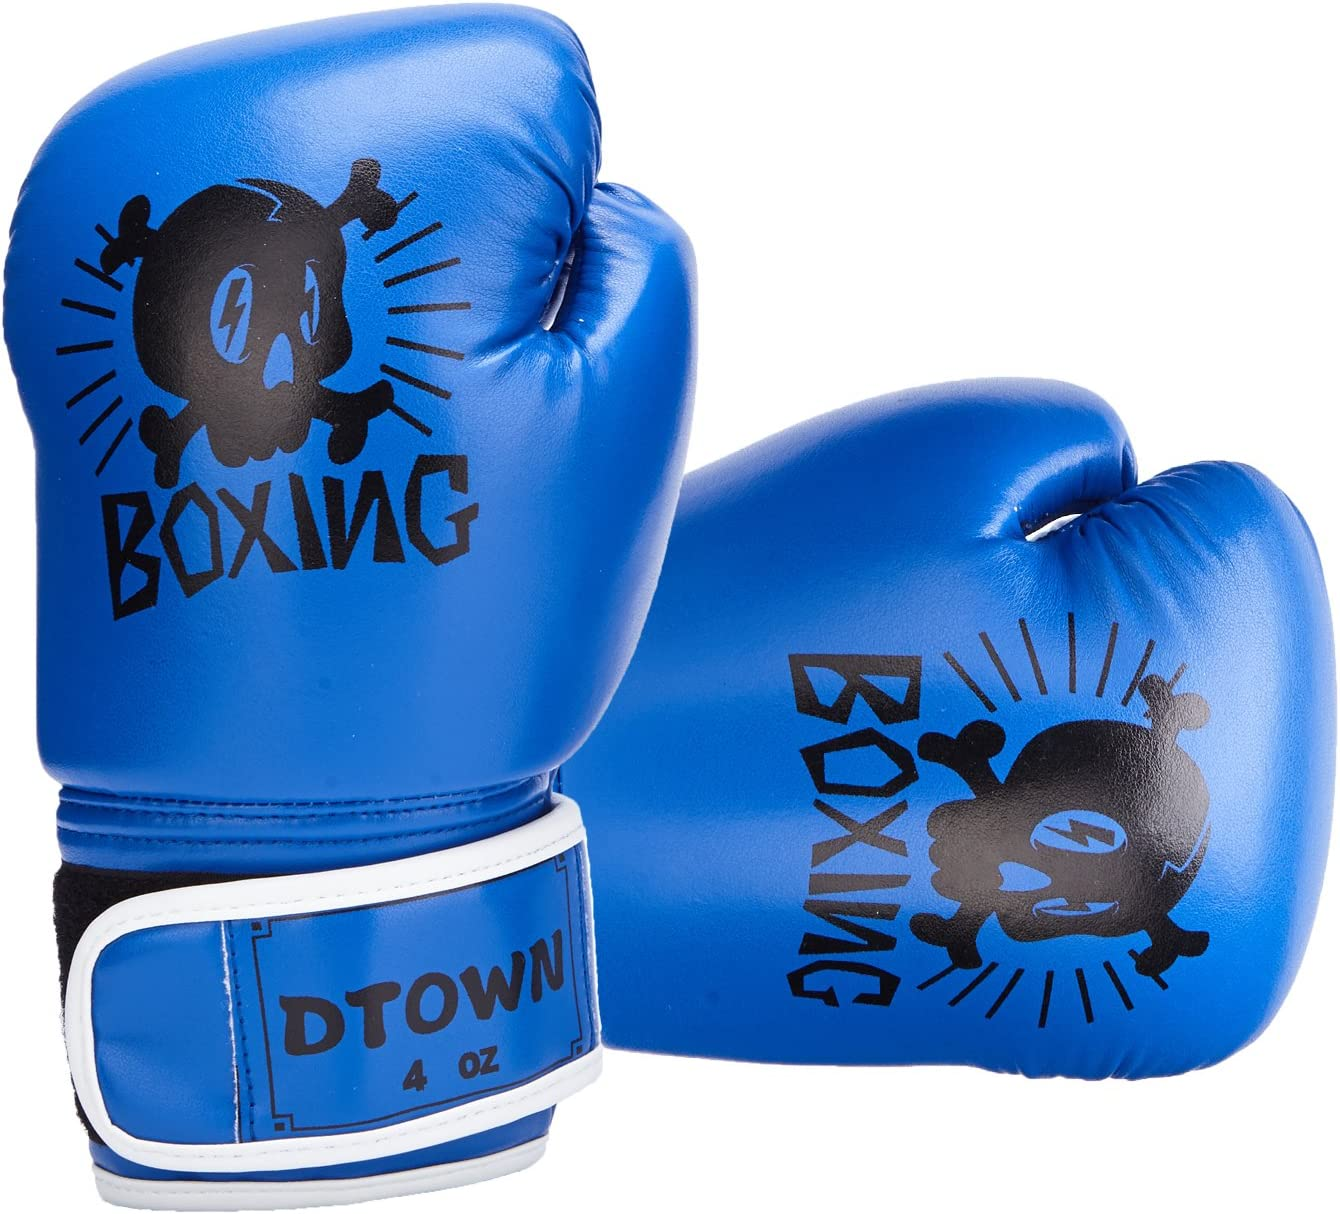 Dtown Kids Boxing Gloves 4oz 6oz Training Gloves for Toddler and Youth Age 3 to 11 Years PU Leather